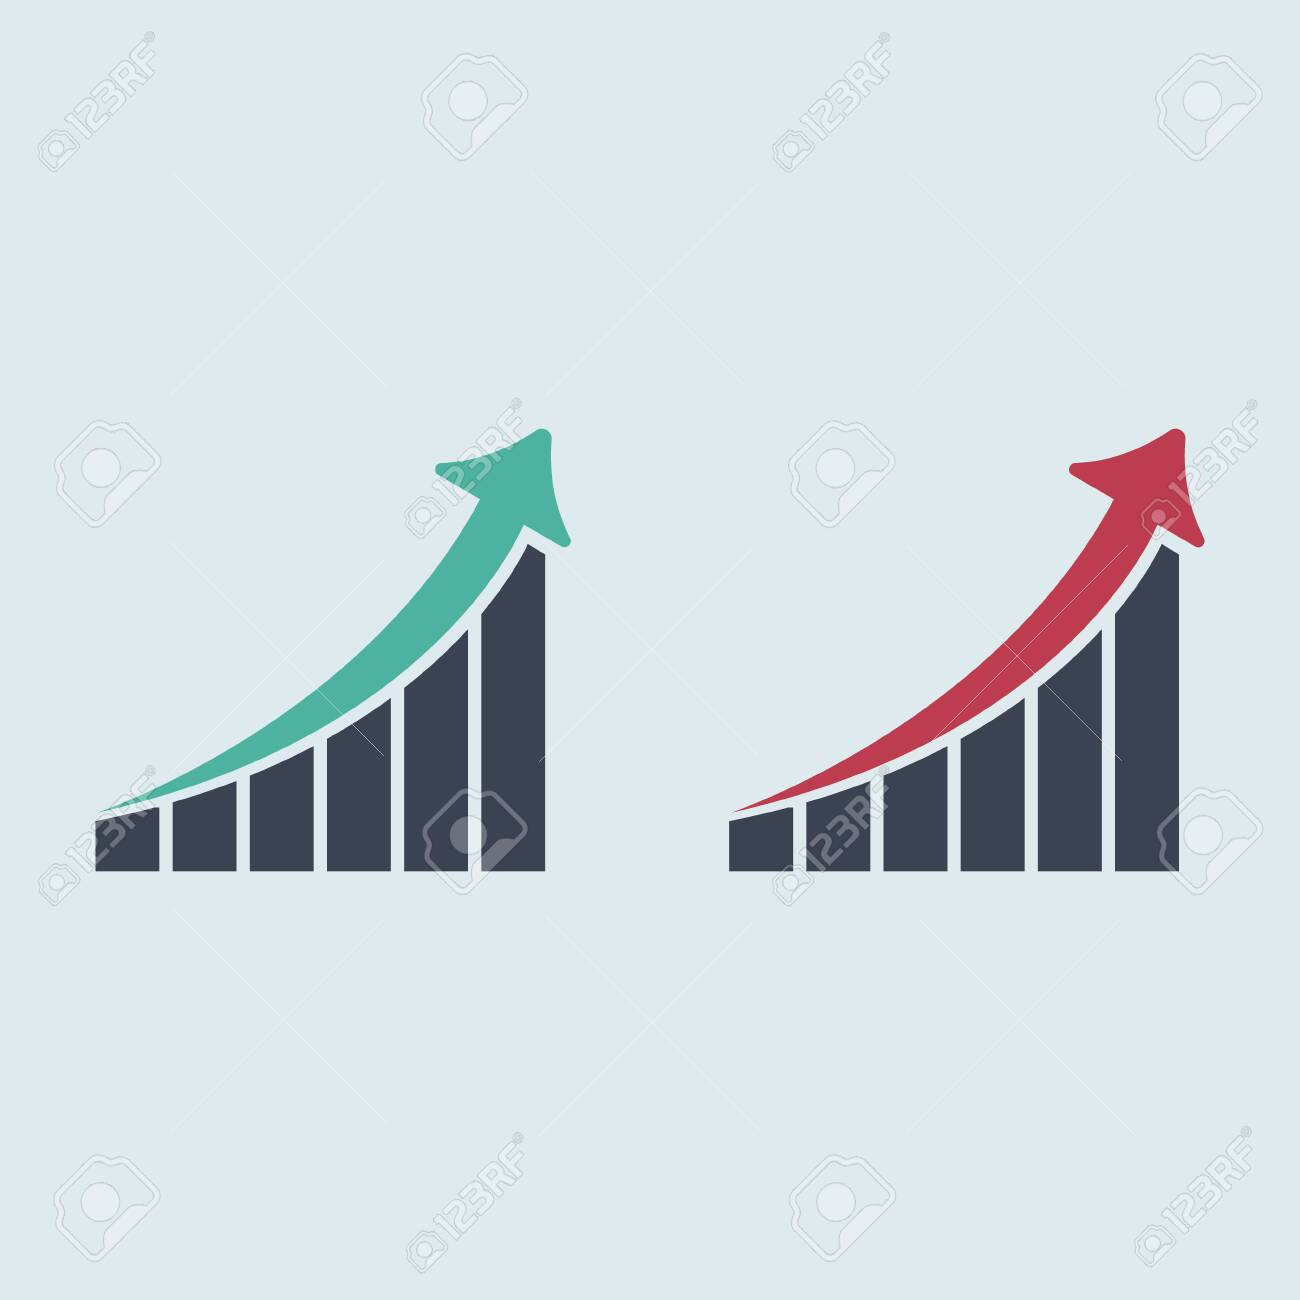 Growing graph icon. graph arrow up. vector flat symbol EPS10 - 146092814